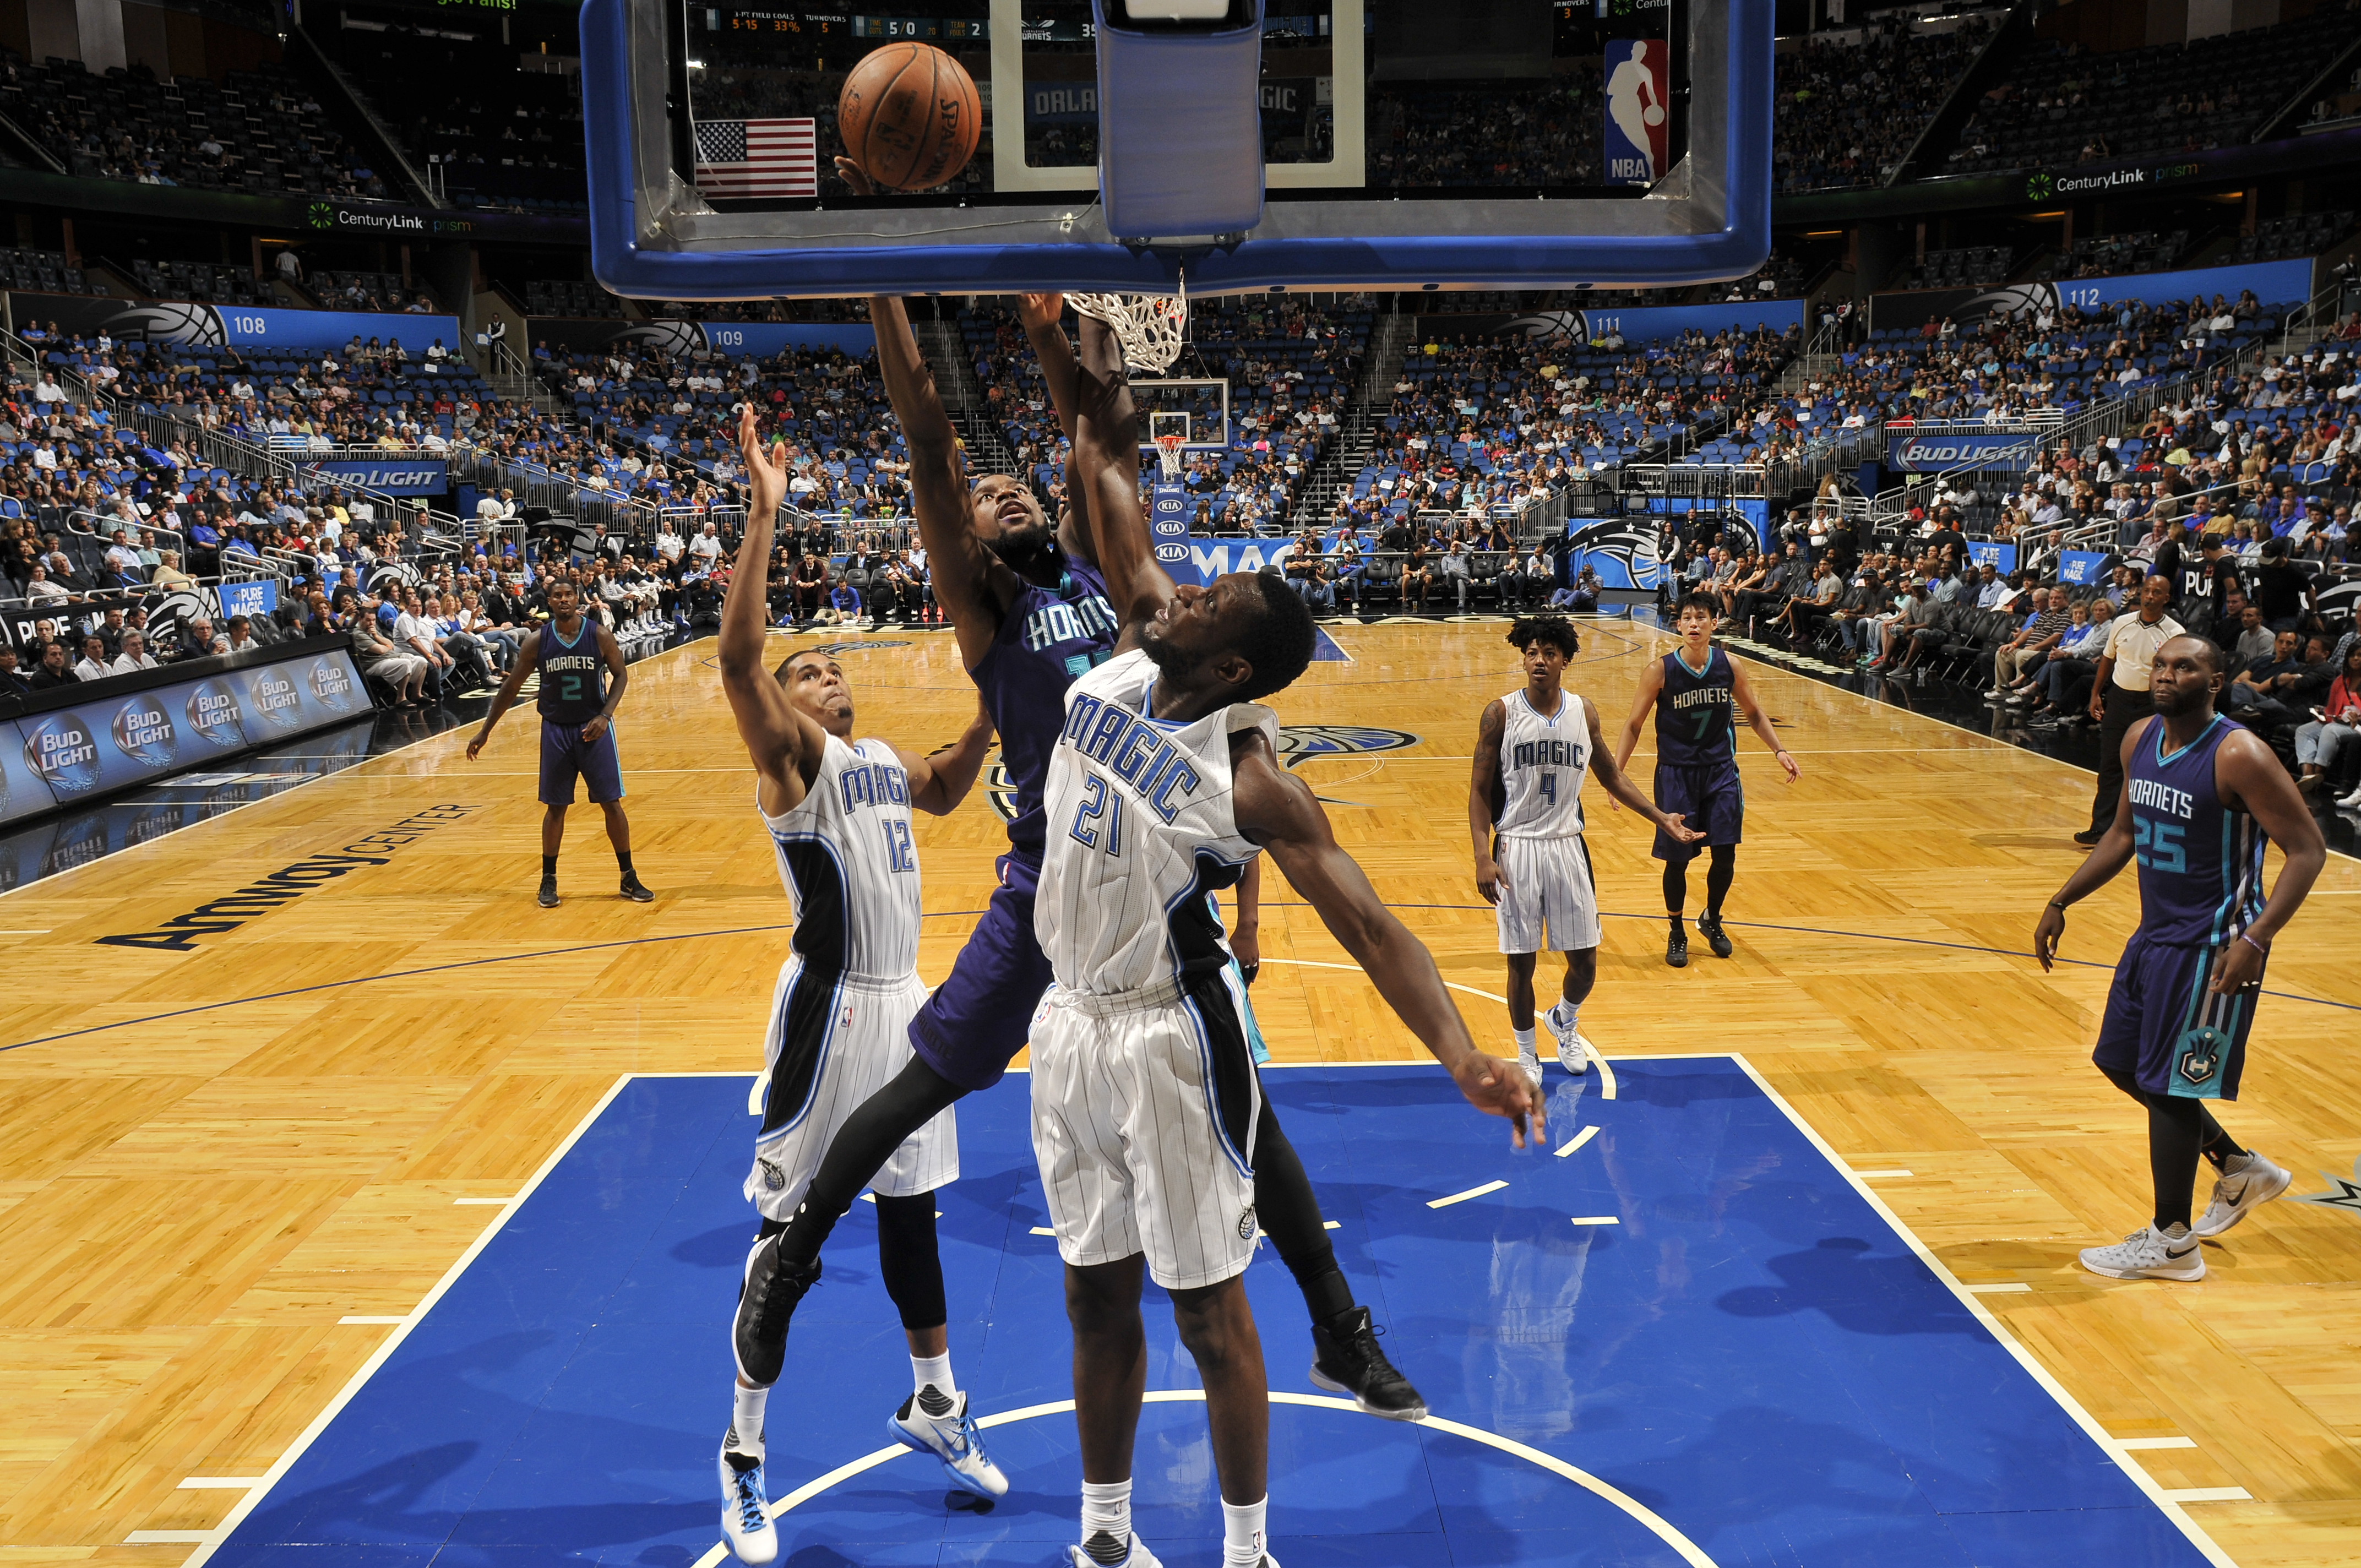 ORLANDO, FL - OCTOBER 3:  Michael Kidd-Gilchrist #14 of the Charlotte Hornets shoots the ball against the Orlando Magic during a preseason game on October 3, 2015 at Amway Center in Orlando, Florida. (Photo by Fernando Medina/NBAE via Getty Images)